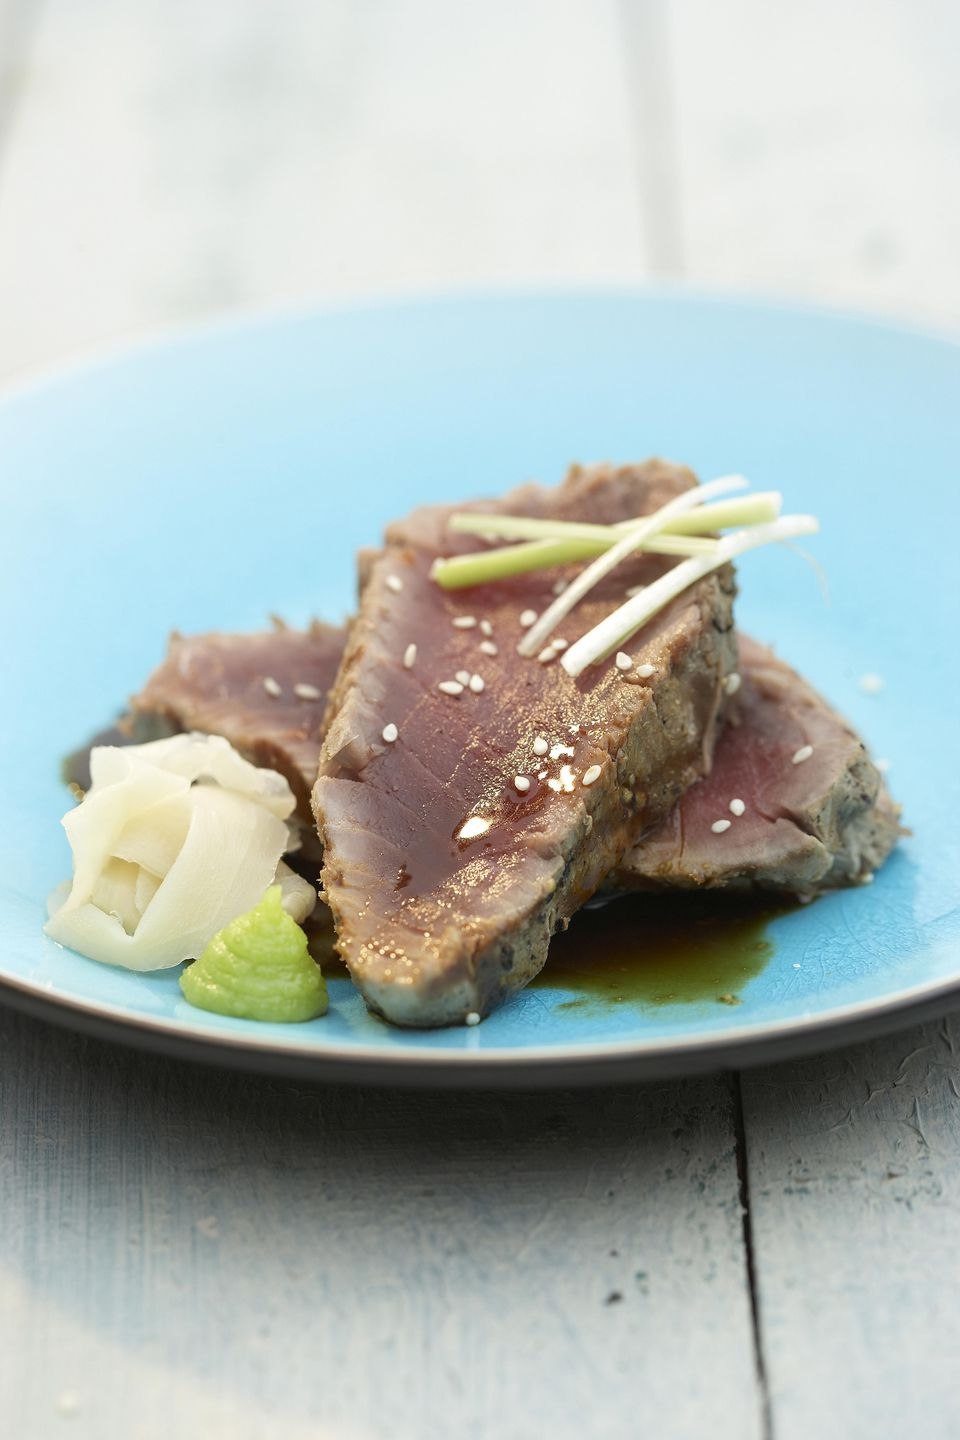 Seared Tuna in Wasabi Sauce